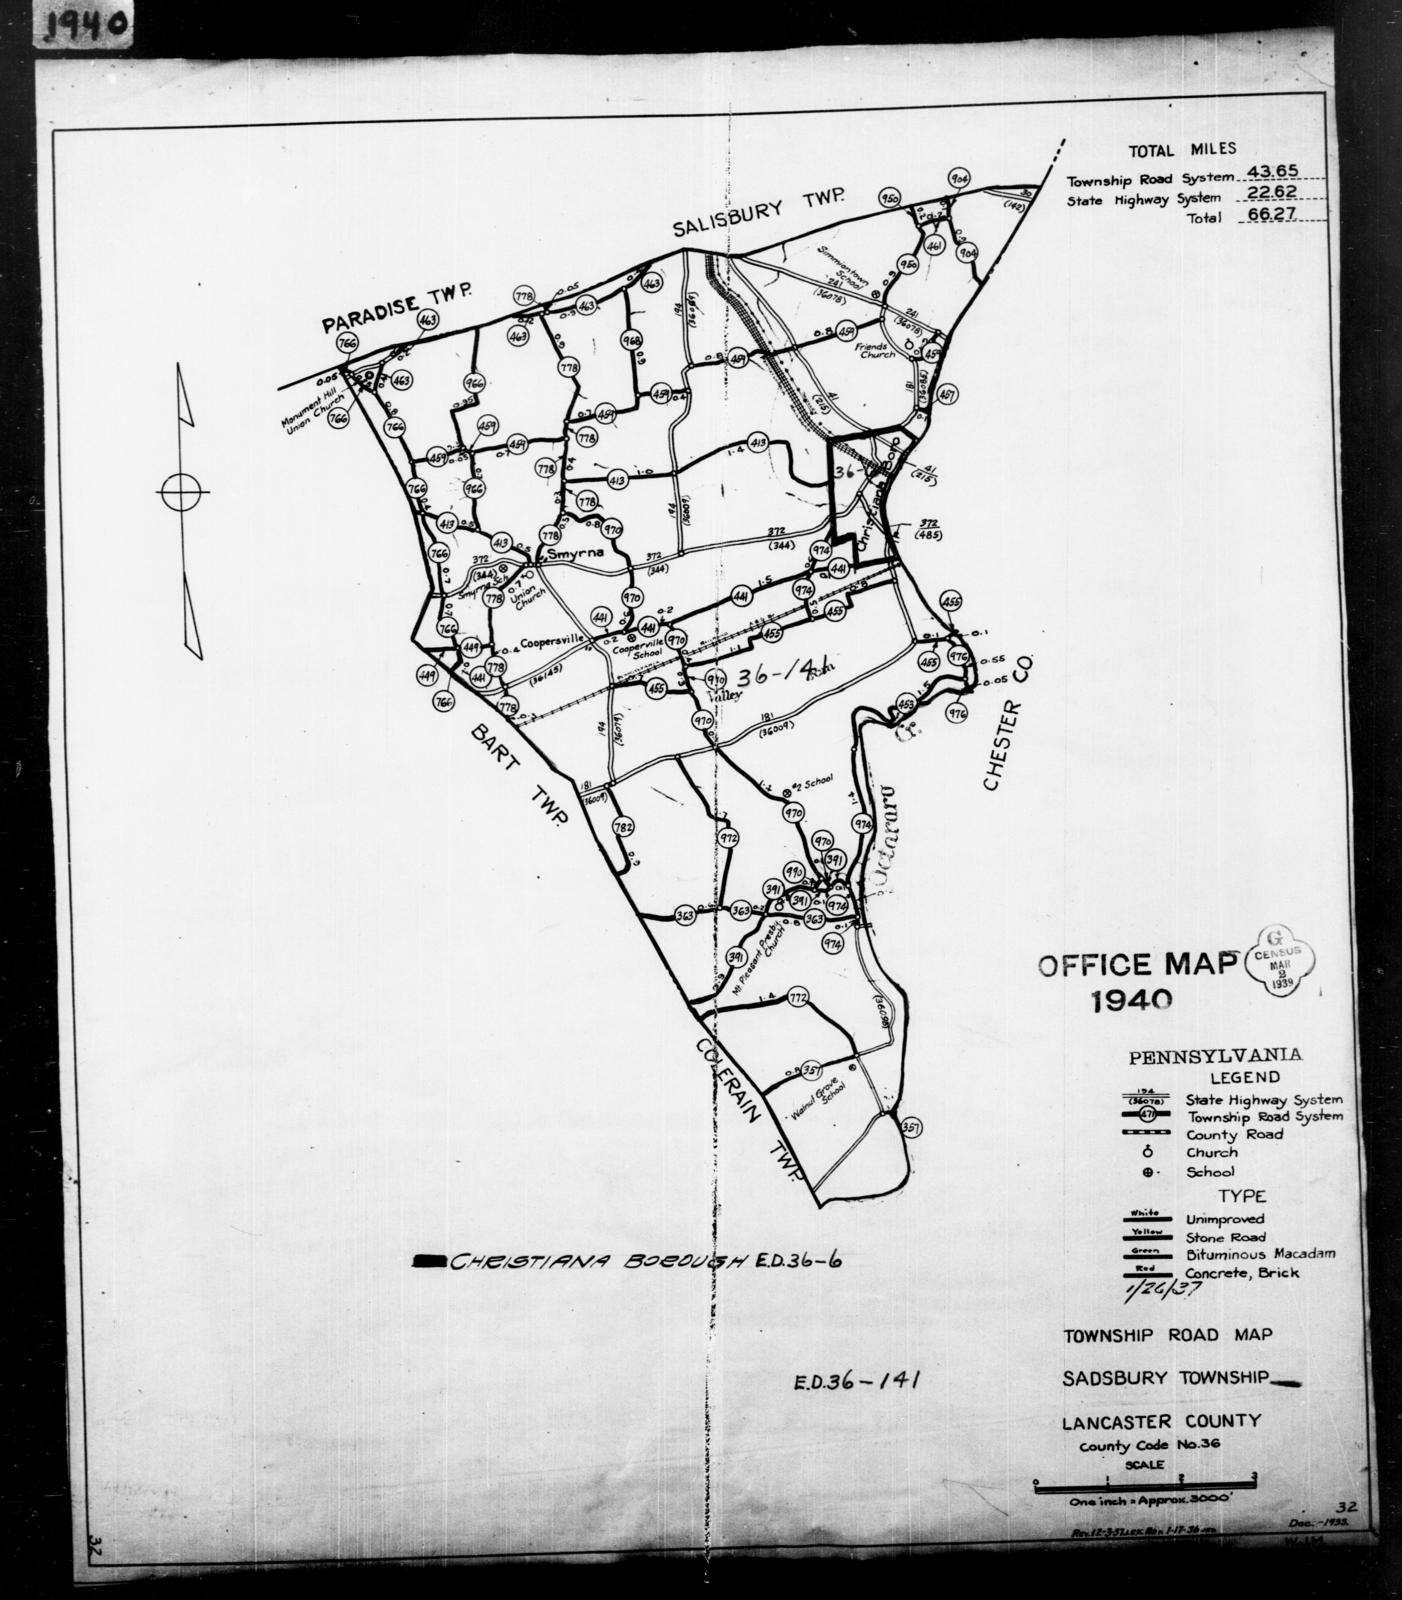 1940 Census Enumeration District Maps - Pennsylvania ... on frederick county md district map, pa state representatives district map, pa house district map,